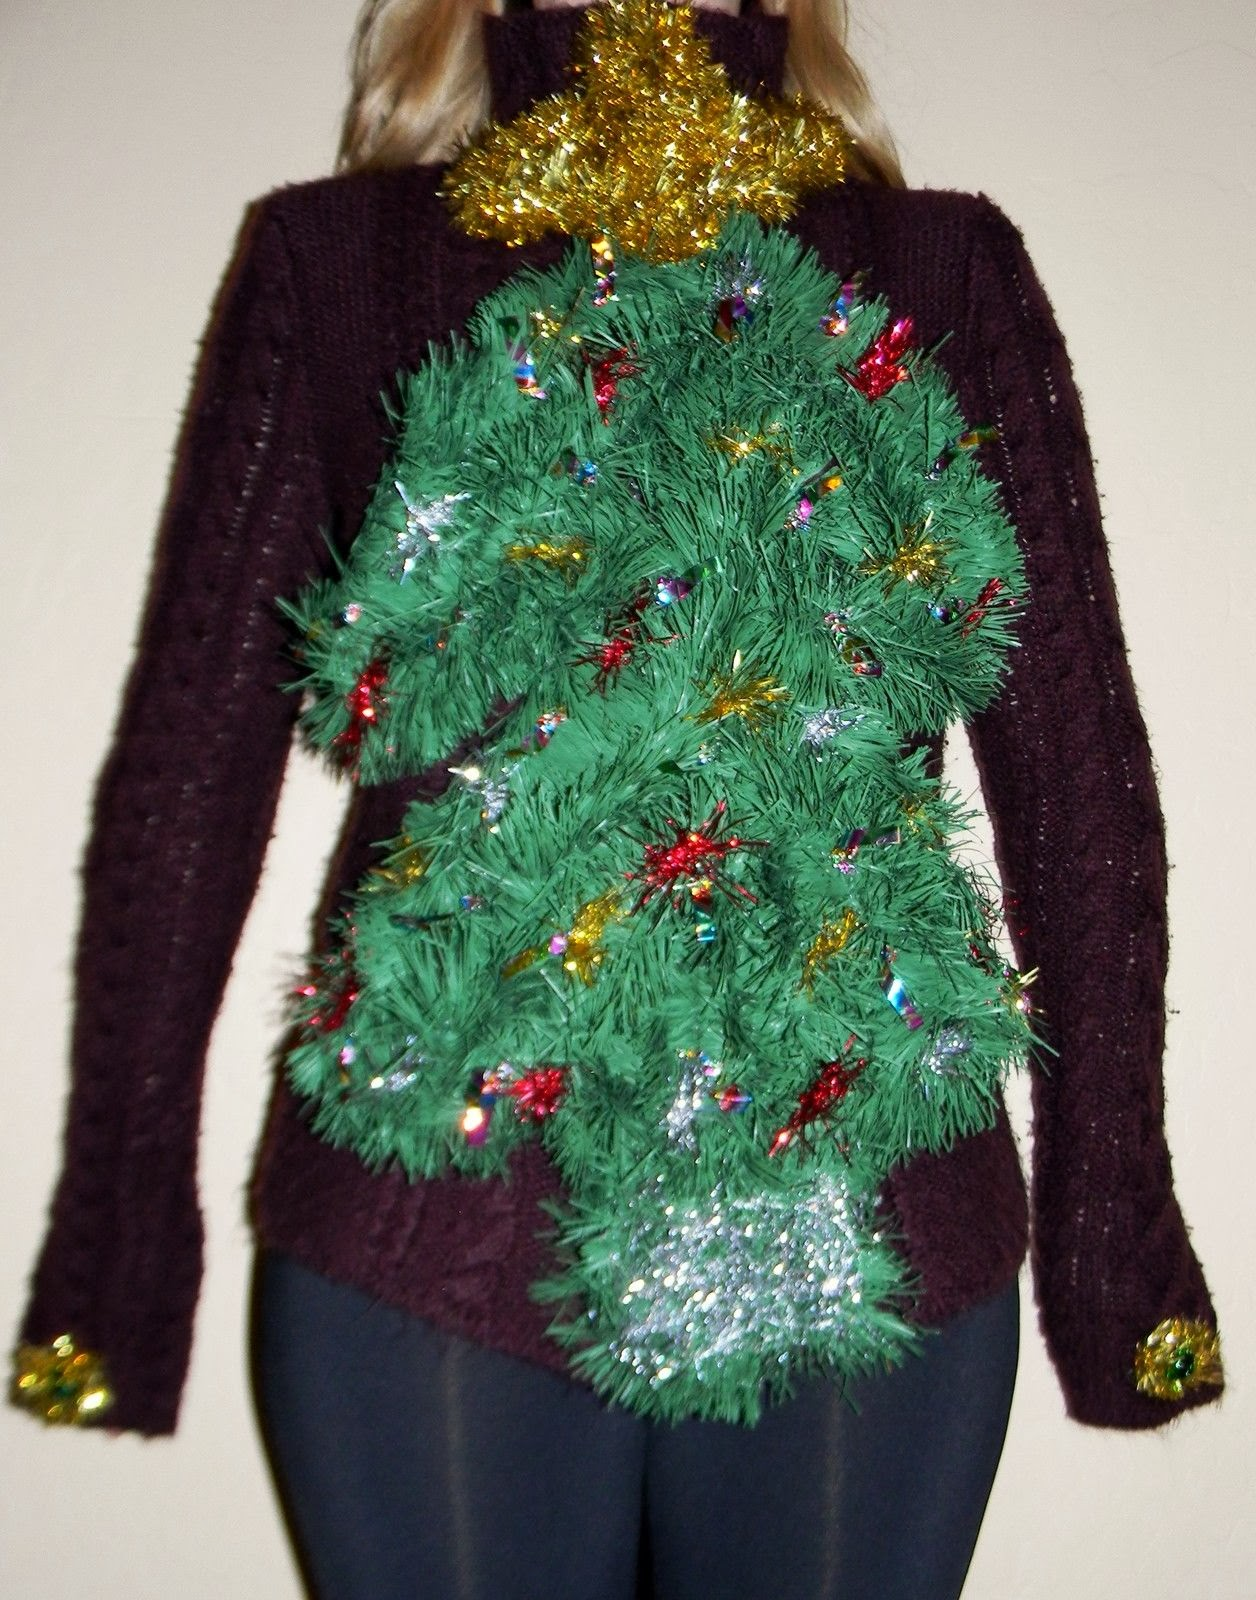 DIY Handmade Ugly Christmas Sweater Ideas - Crafty Morning